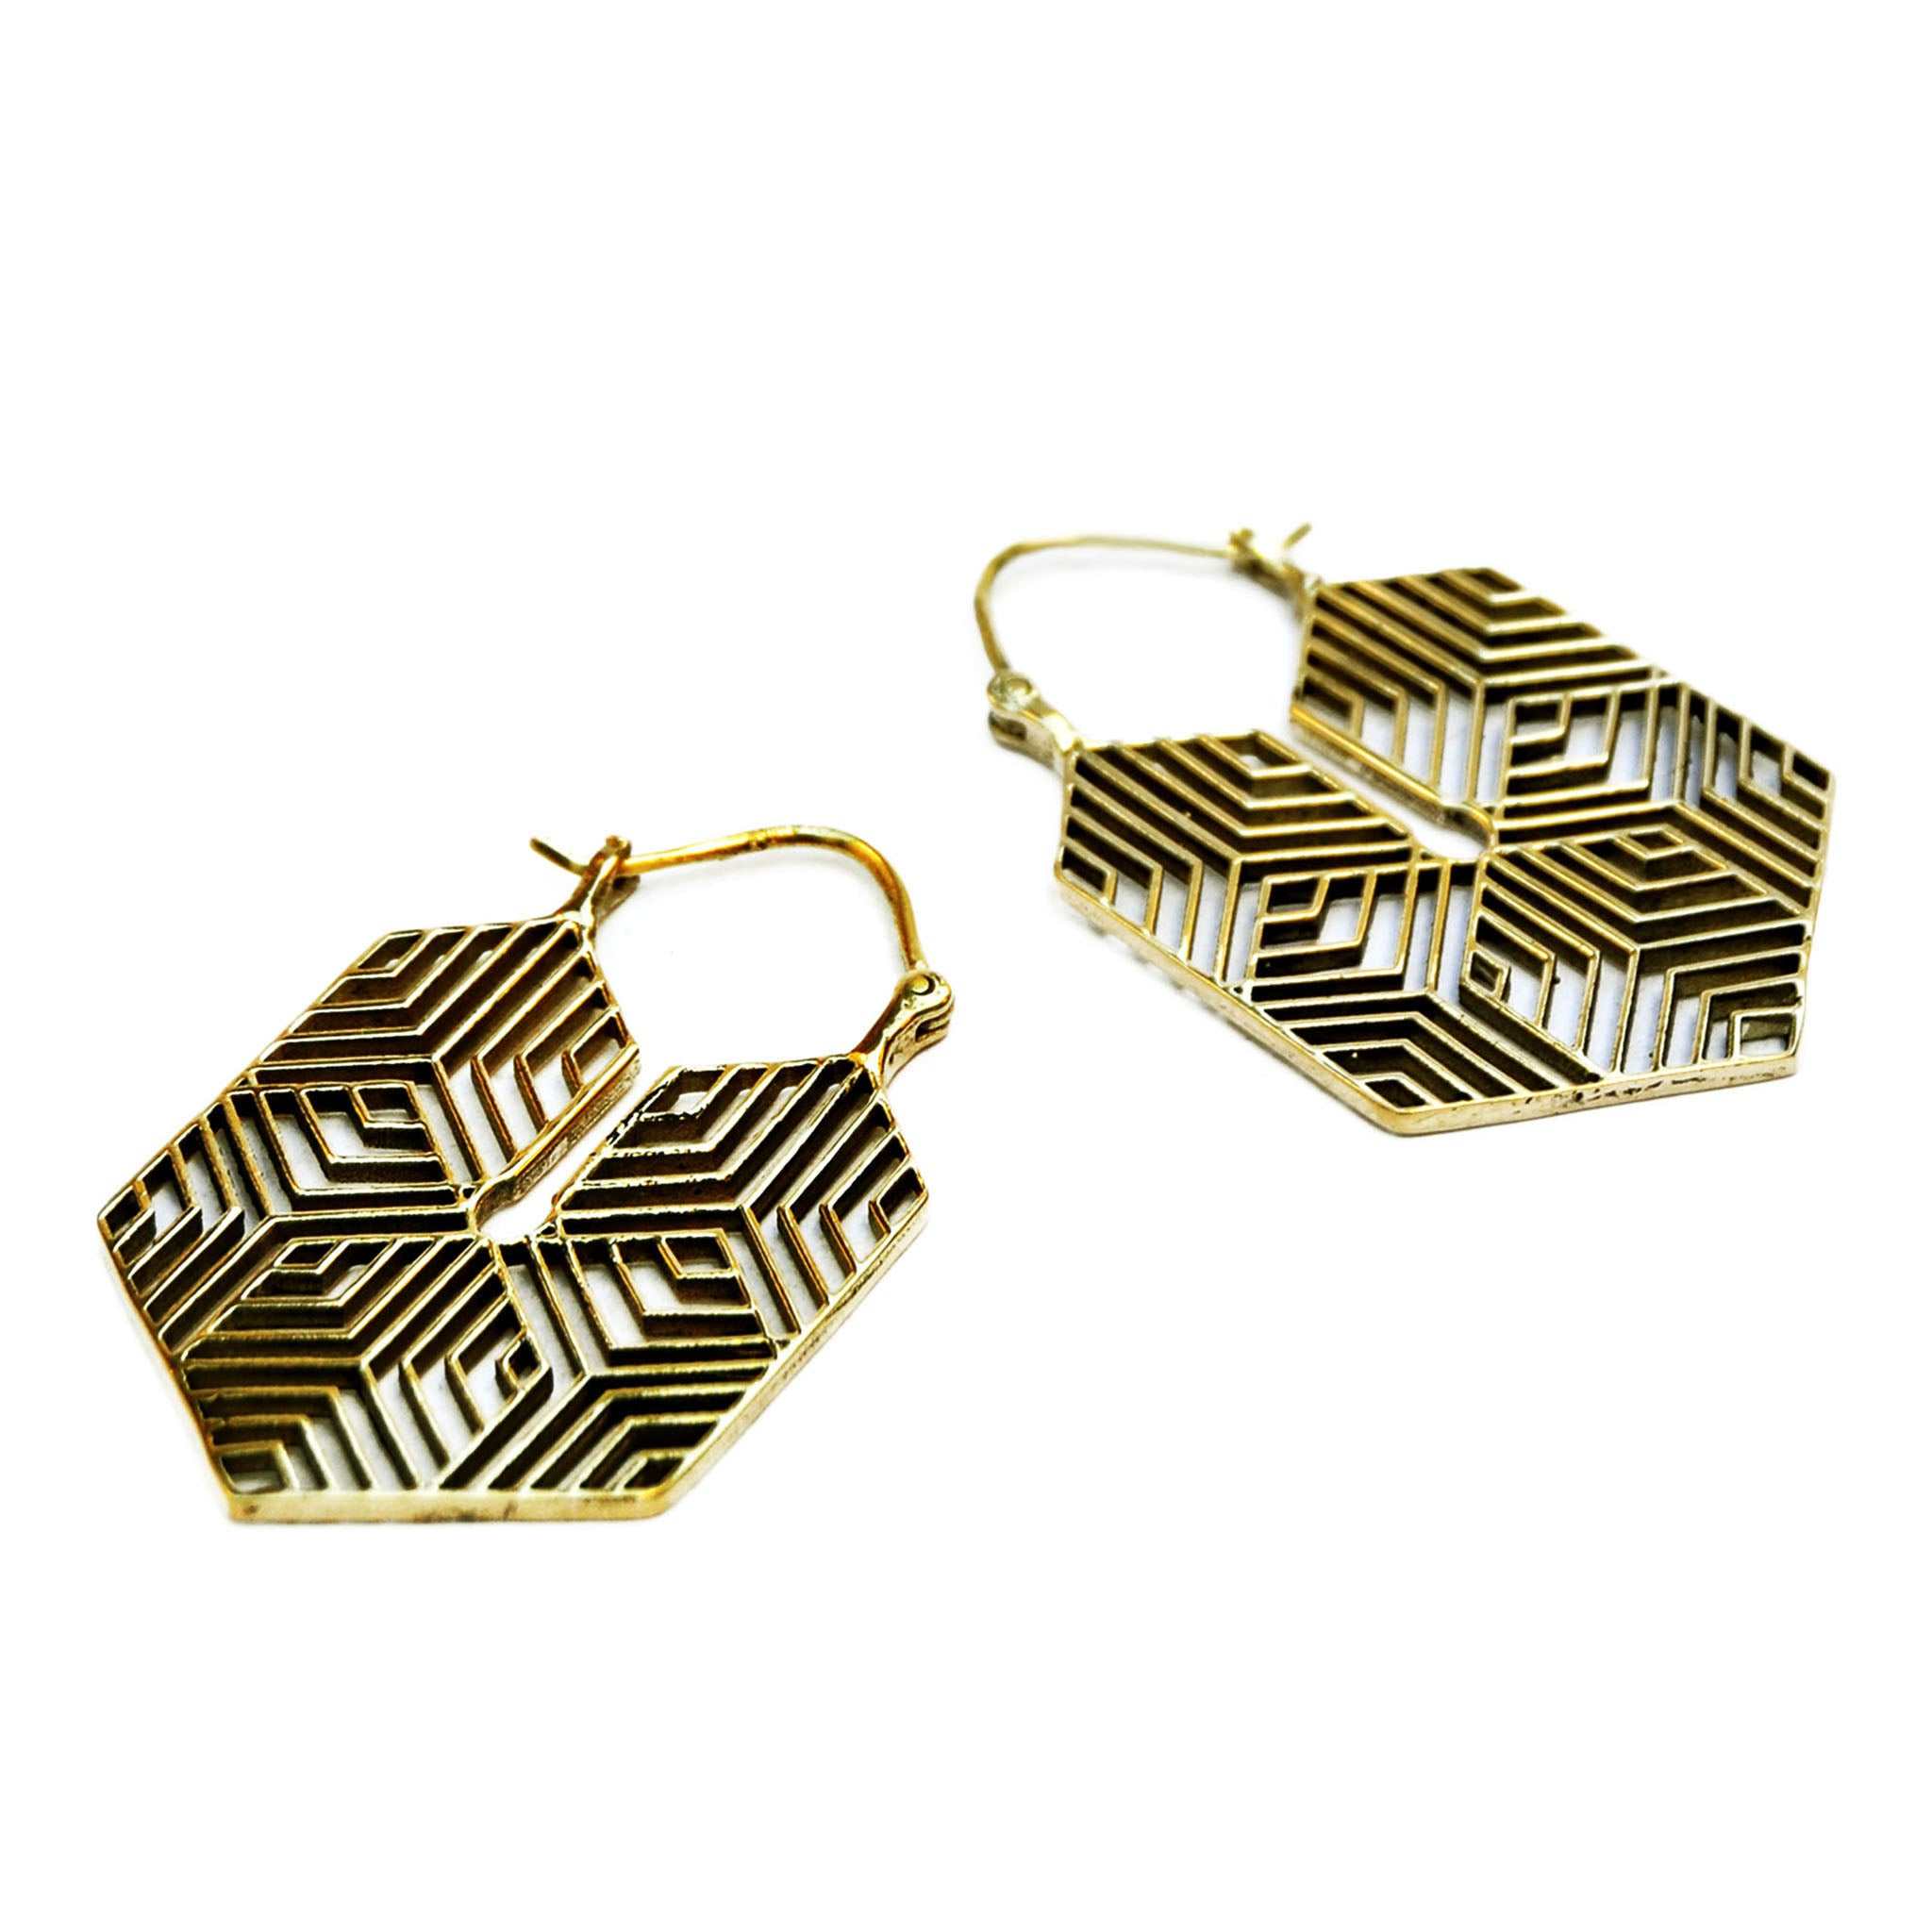 Large geometric earrings